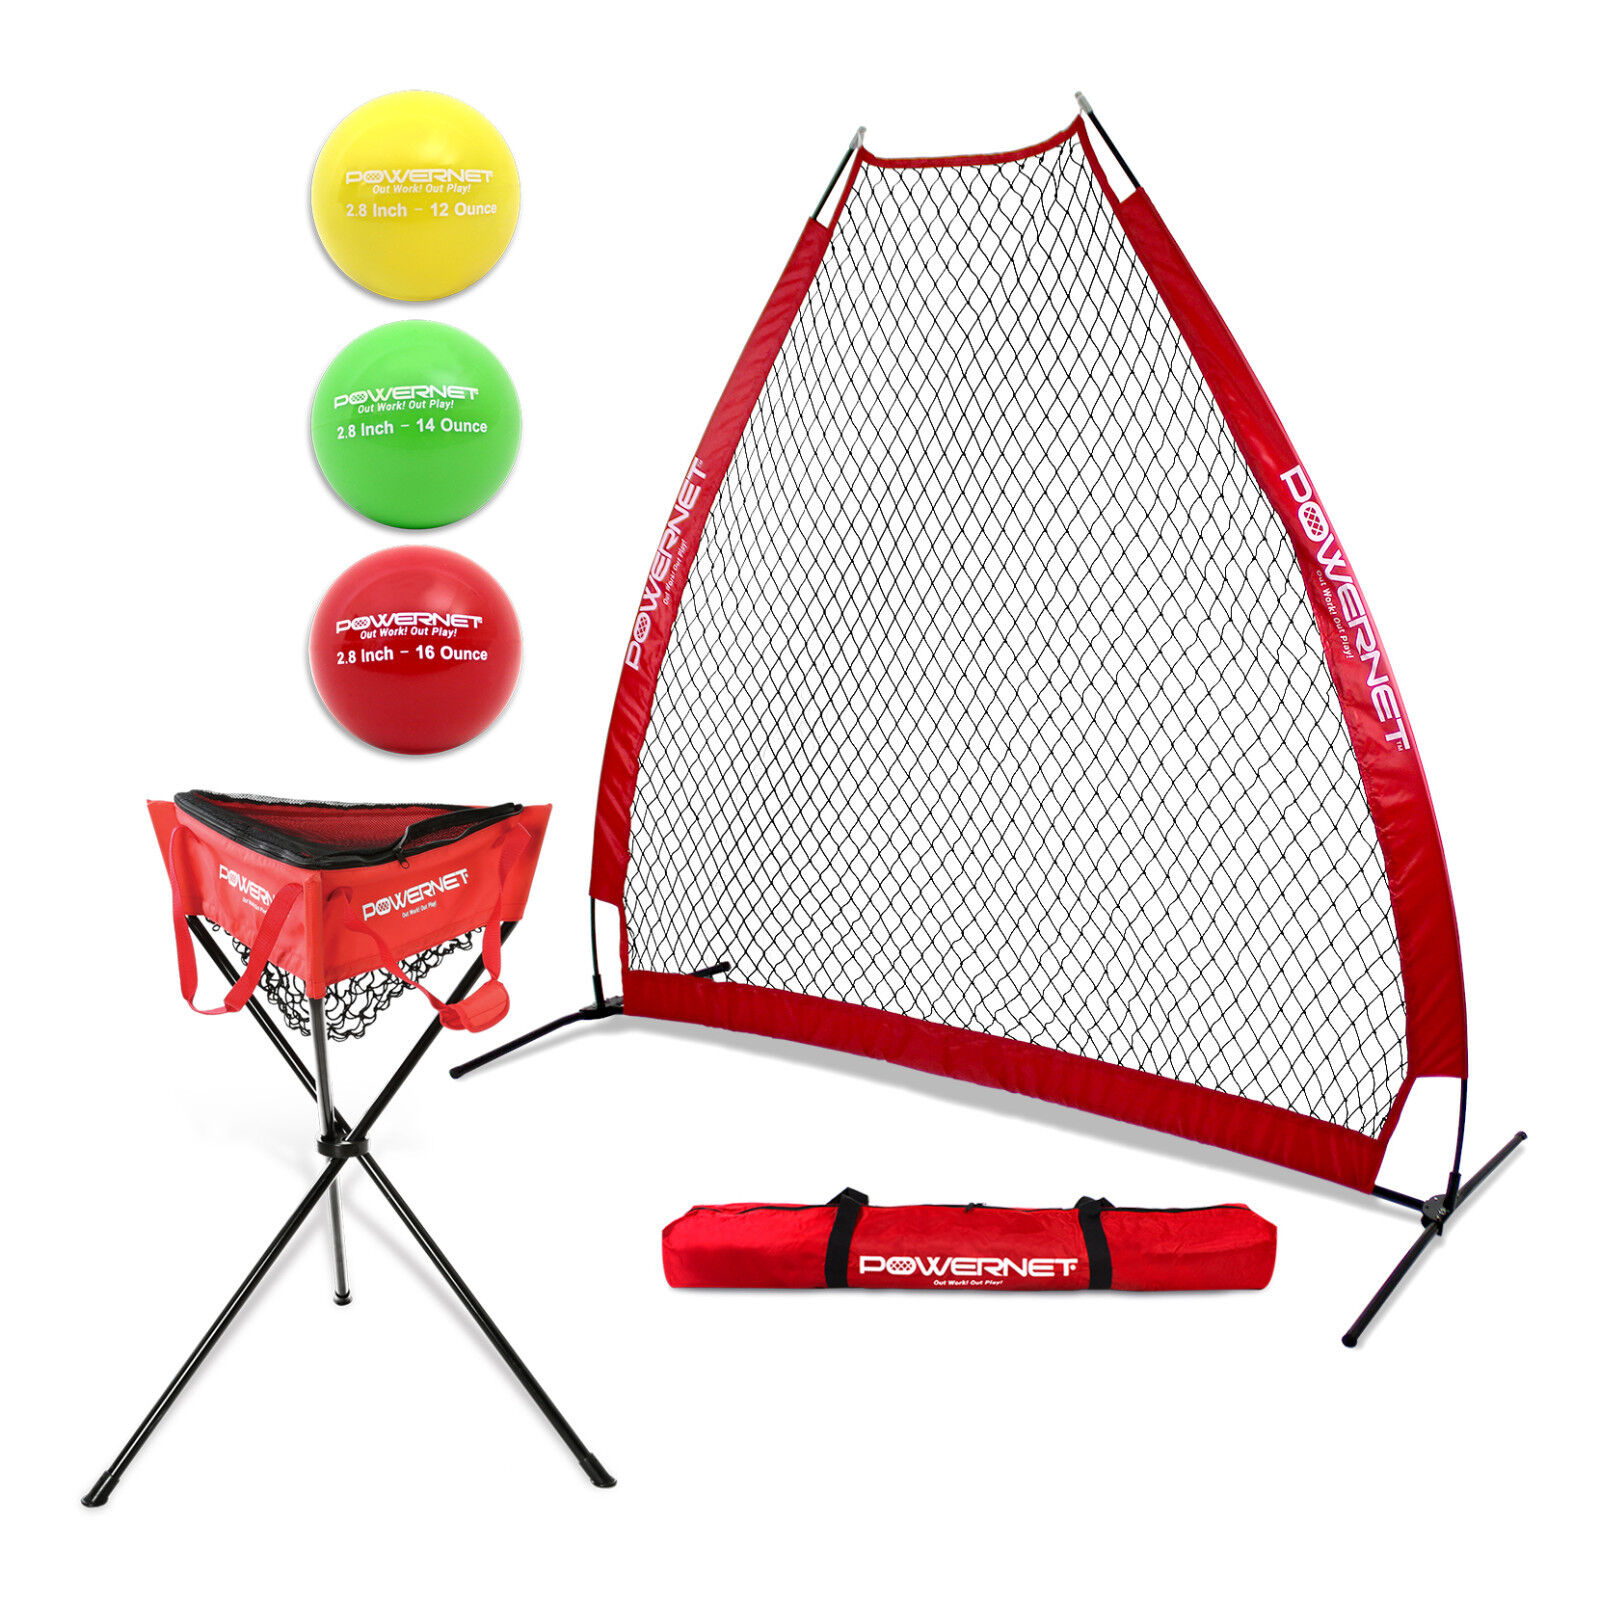 PowerNet Portable A-Frame Screen Baseball Pitching Screen A-Frame Zipperosso Ball Caddy 1d79e3